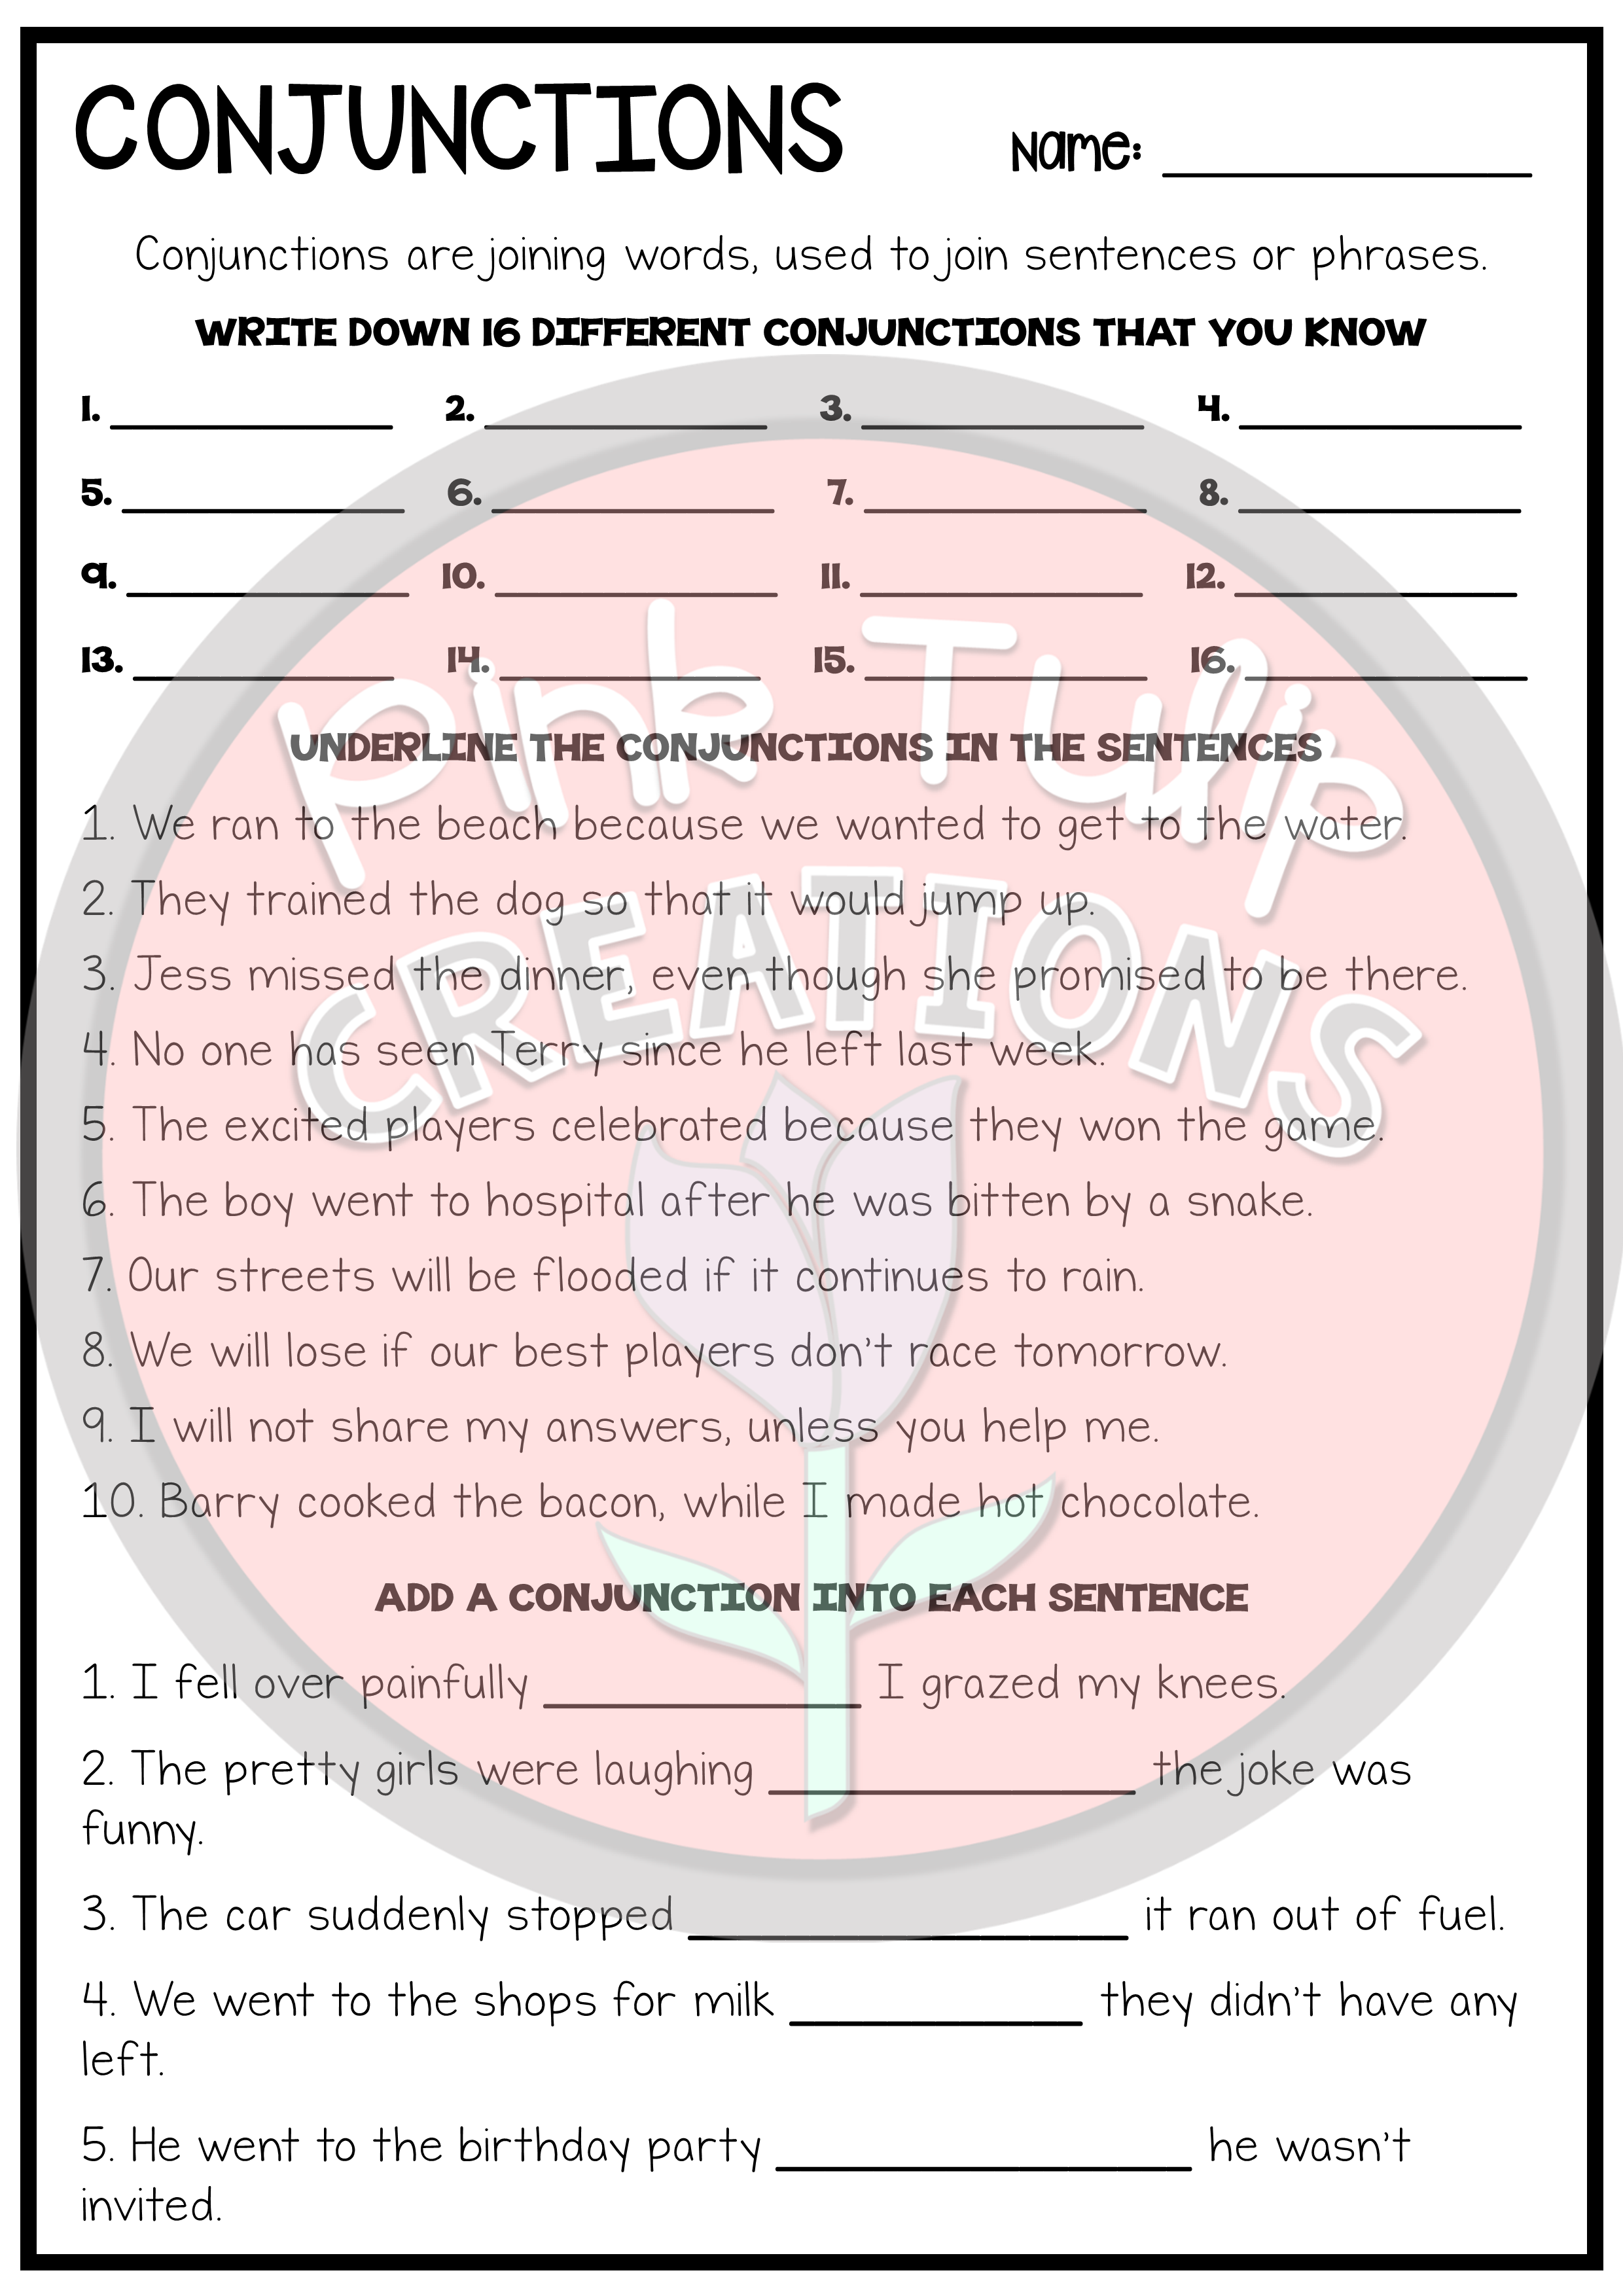 medium resolution of Using Conjunctions Worksheet   Printable Worksheets and Activities for  Teachers